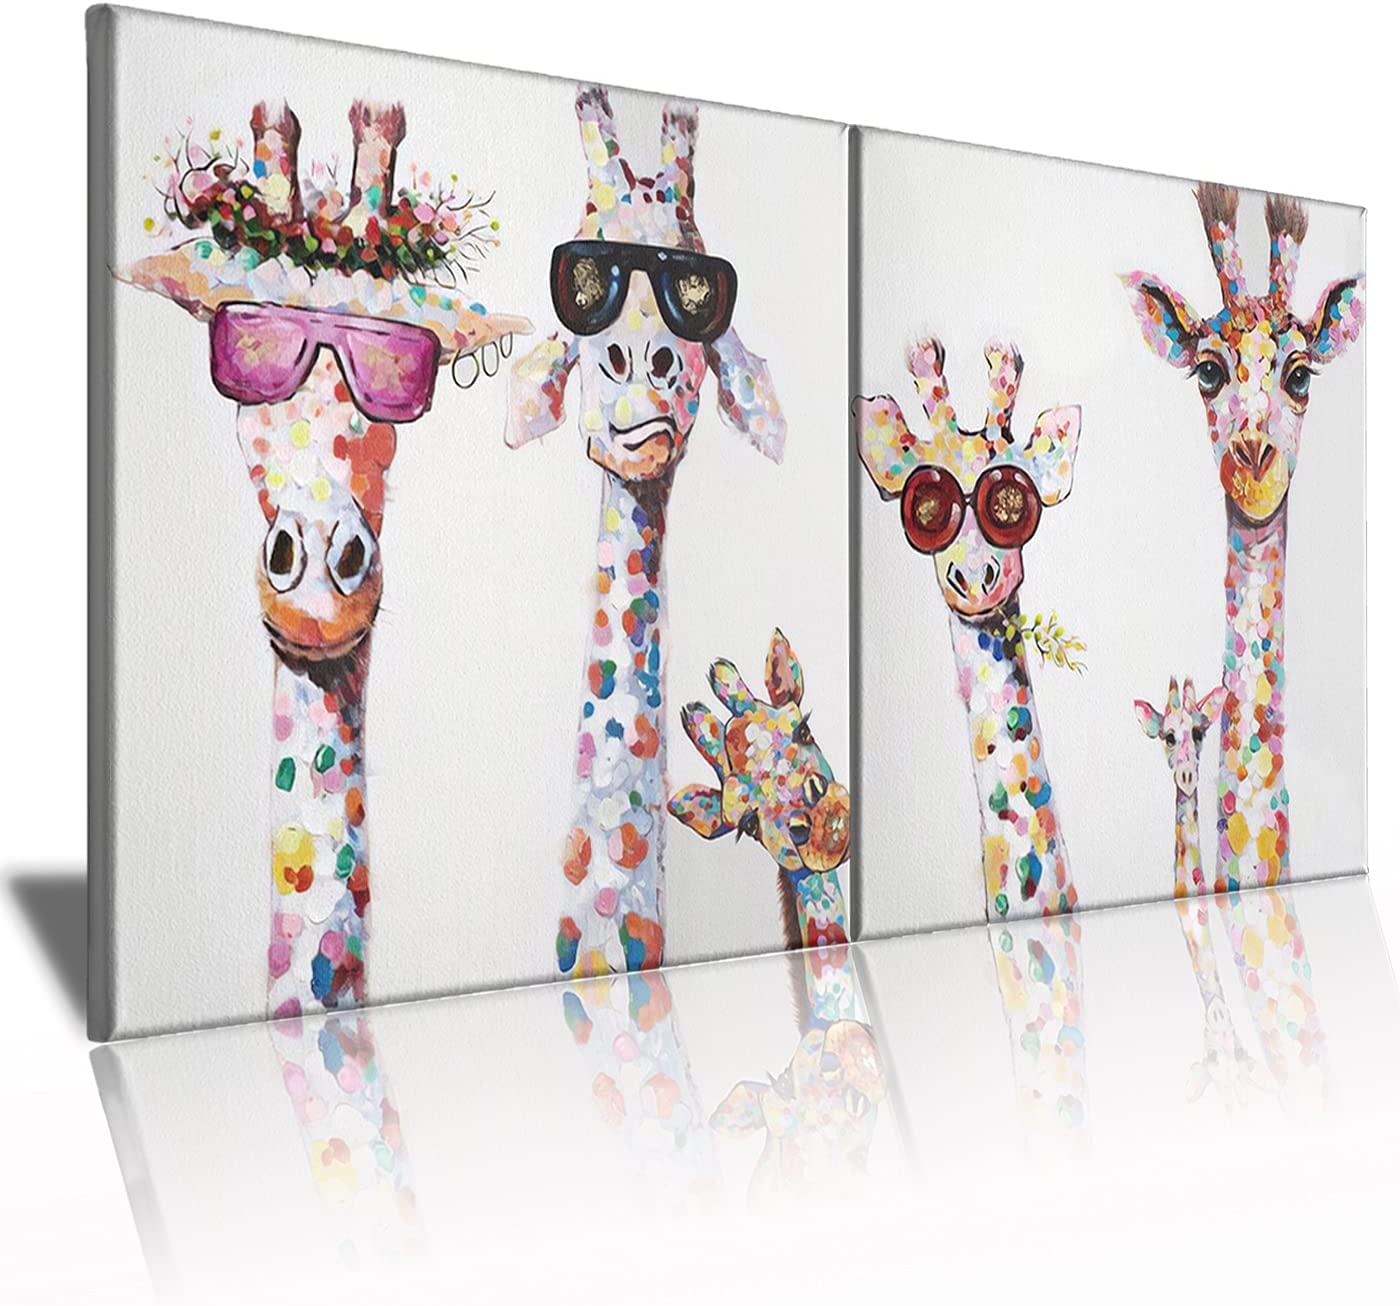 Funny Animal Canvas Wall Art Decor Lovely Giraffes Family Cartoons Painting Prints Picture Framed Stretched Wall Decoration Bedroom Kids Nursery Room Gift